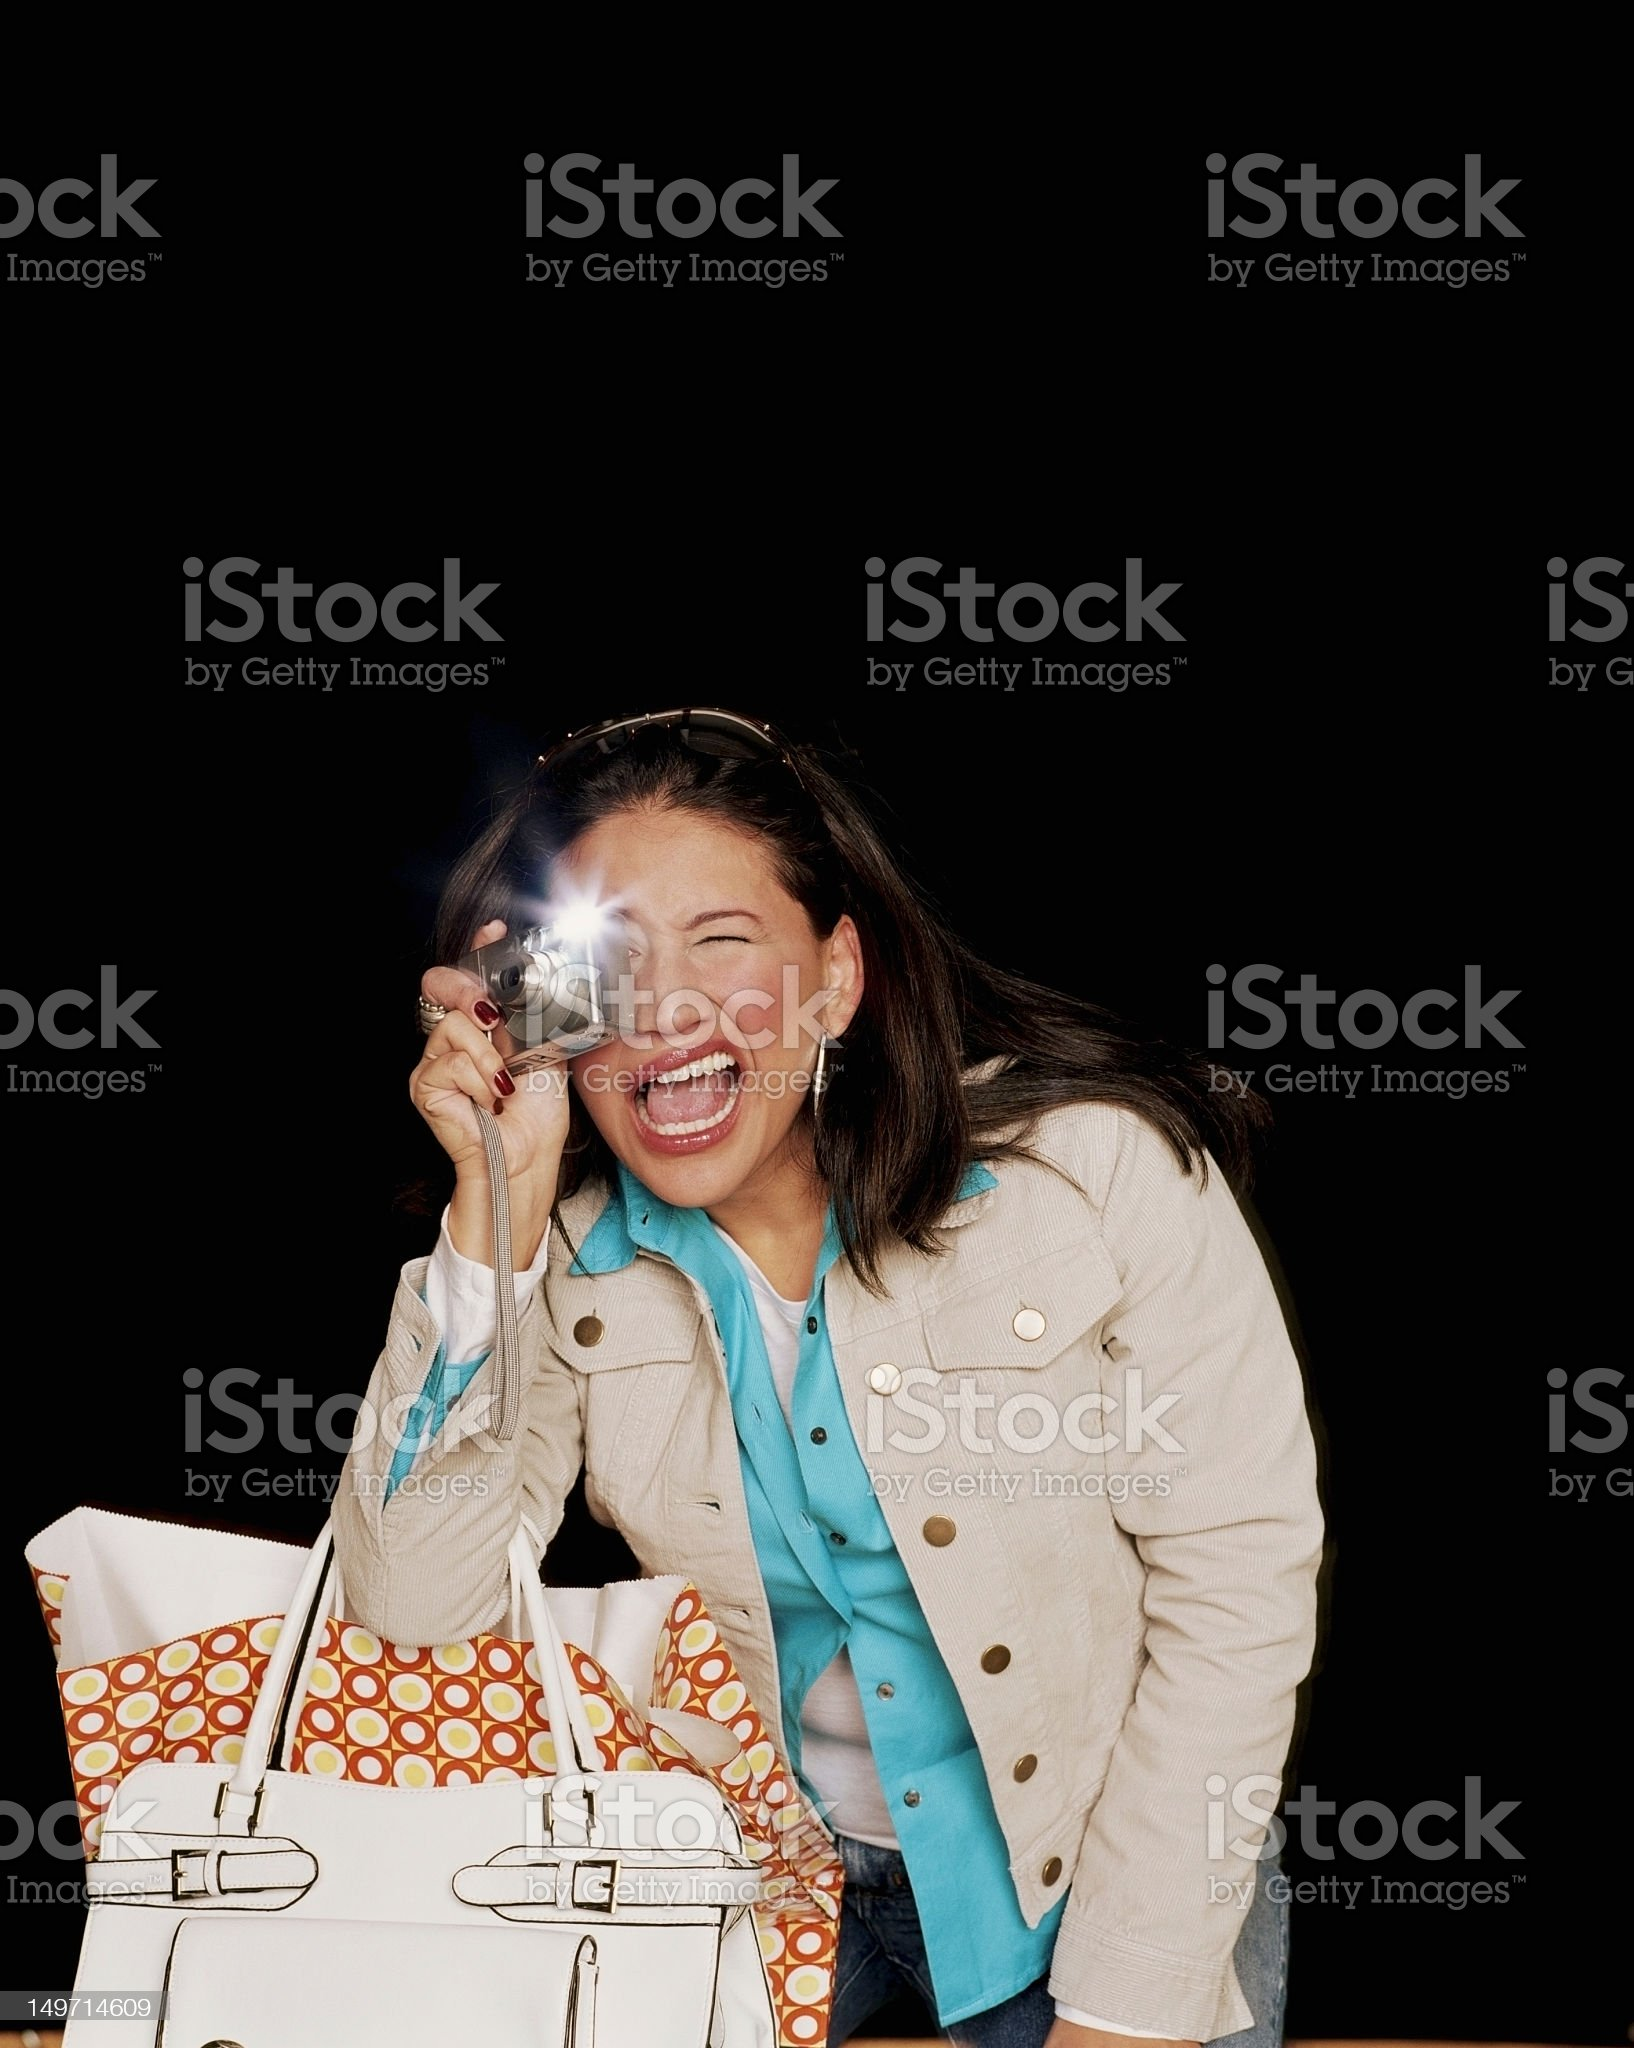 Young woman taking flash photo royalty-free stock photo